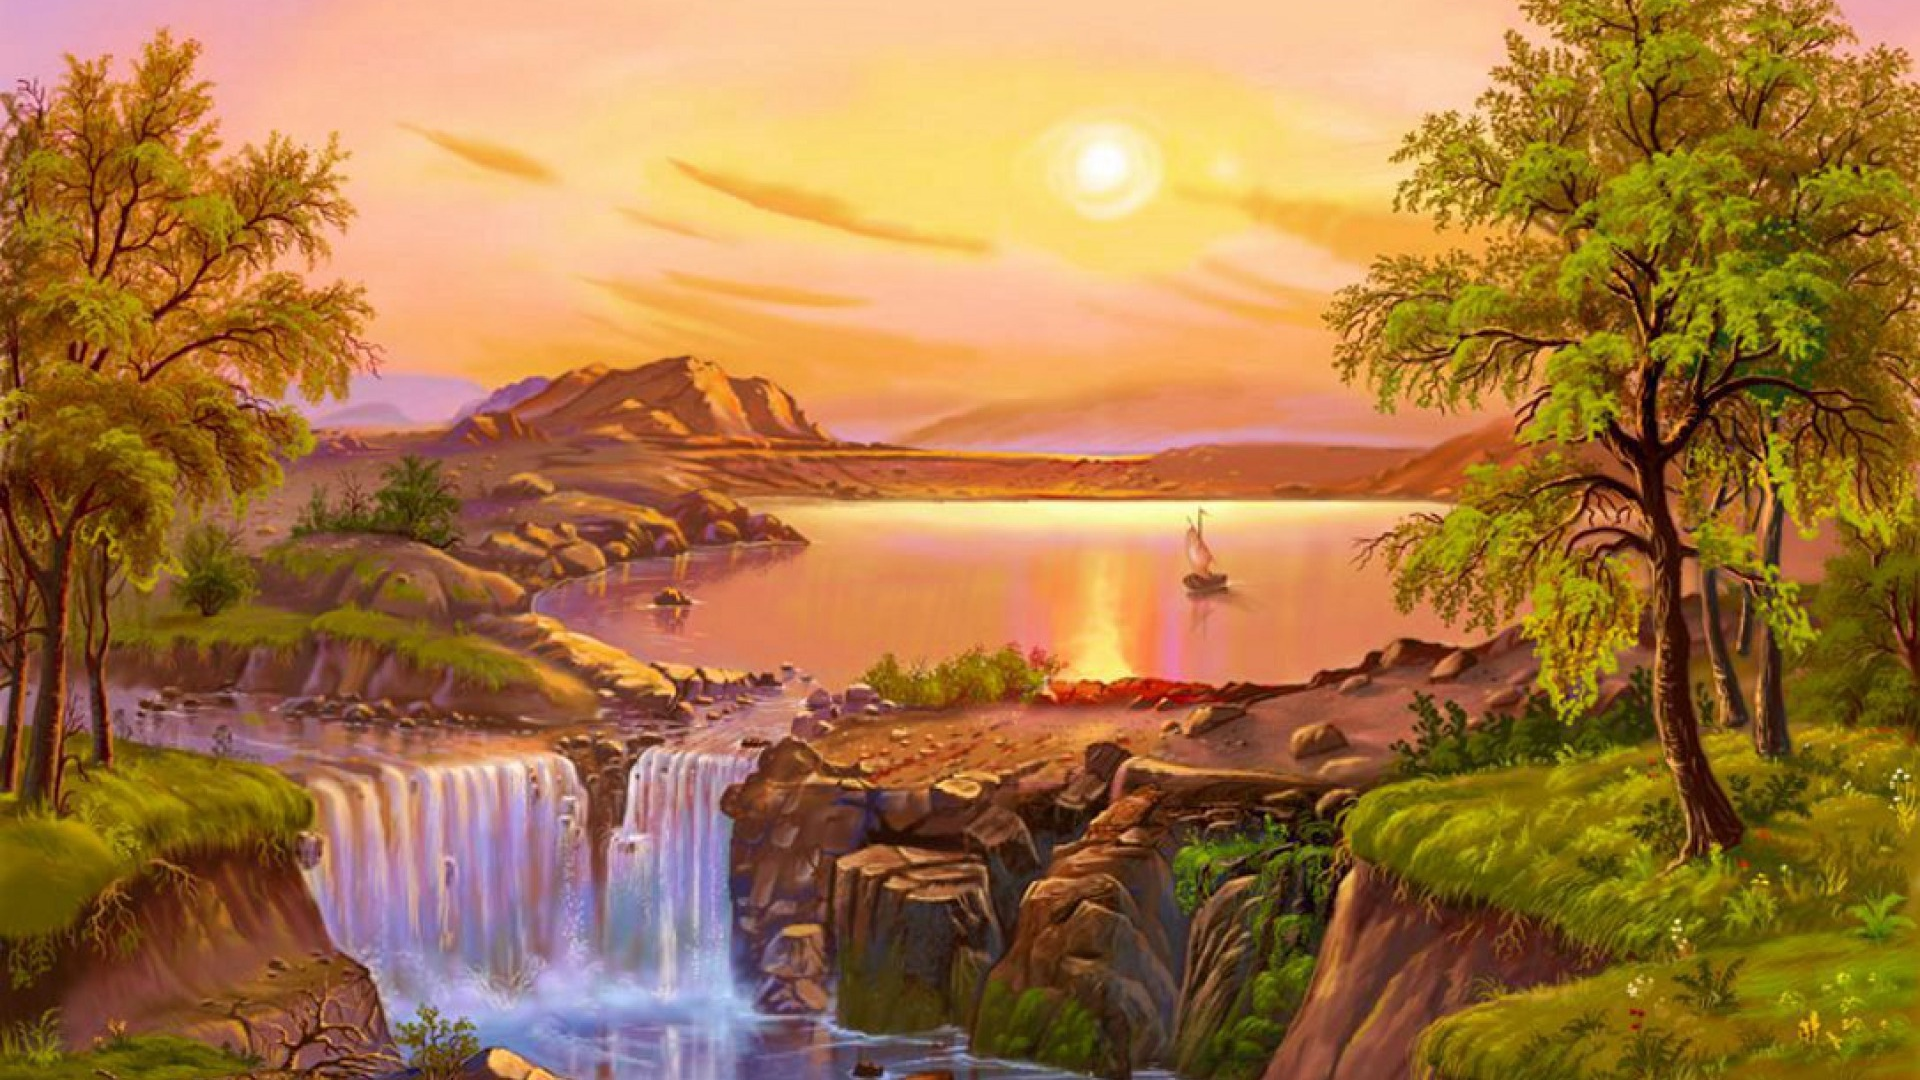 1920x1080 Waterfalls Cliffs Trees Sunset Desktop Pc And